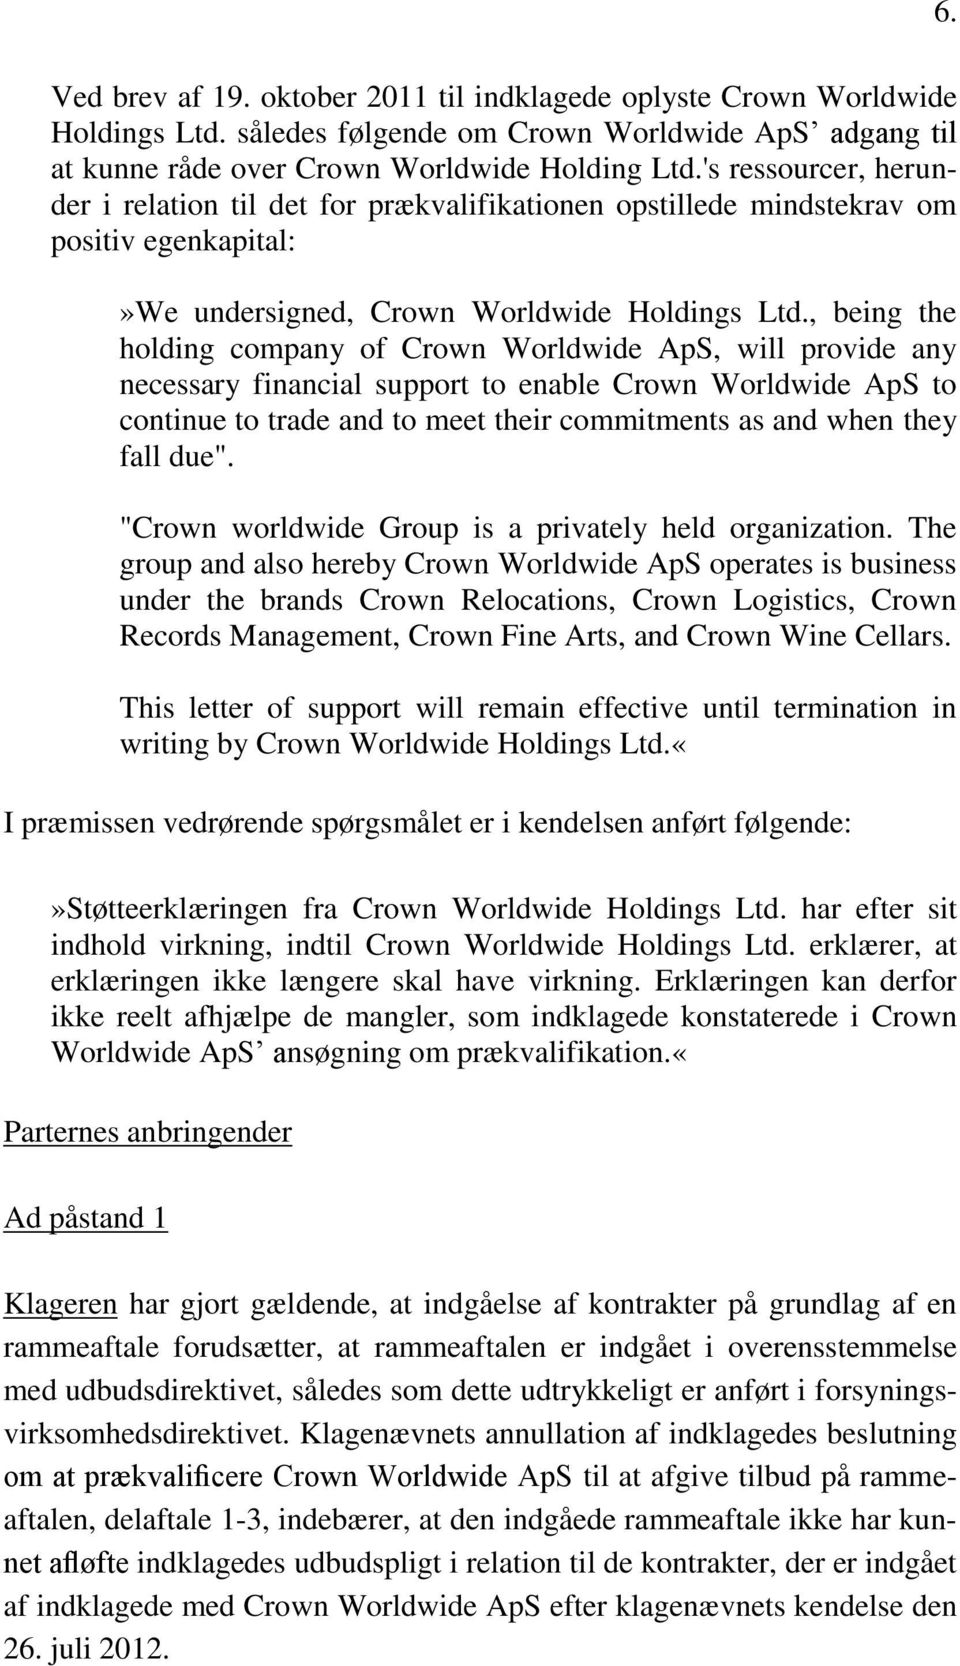 , being the holding company of Crown Worldwide ApS, will provide any necessary financial support to enable Crown Worldwide ApS to continue to trade and to meet their commitments as and when they fall